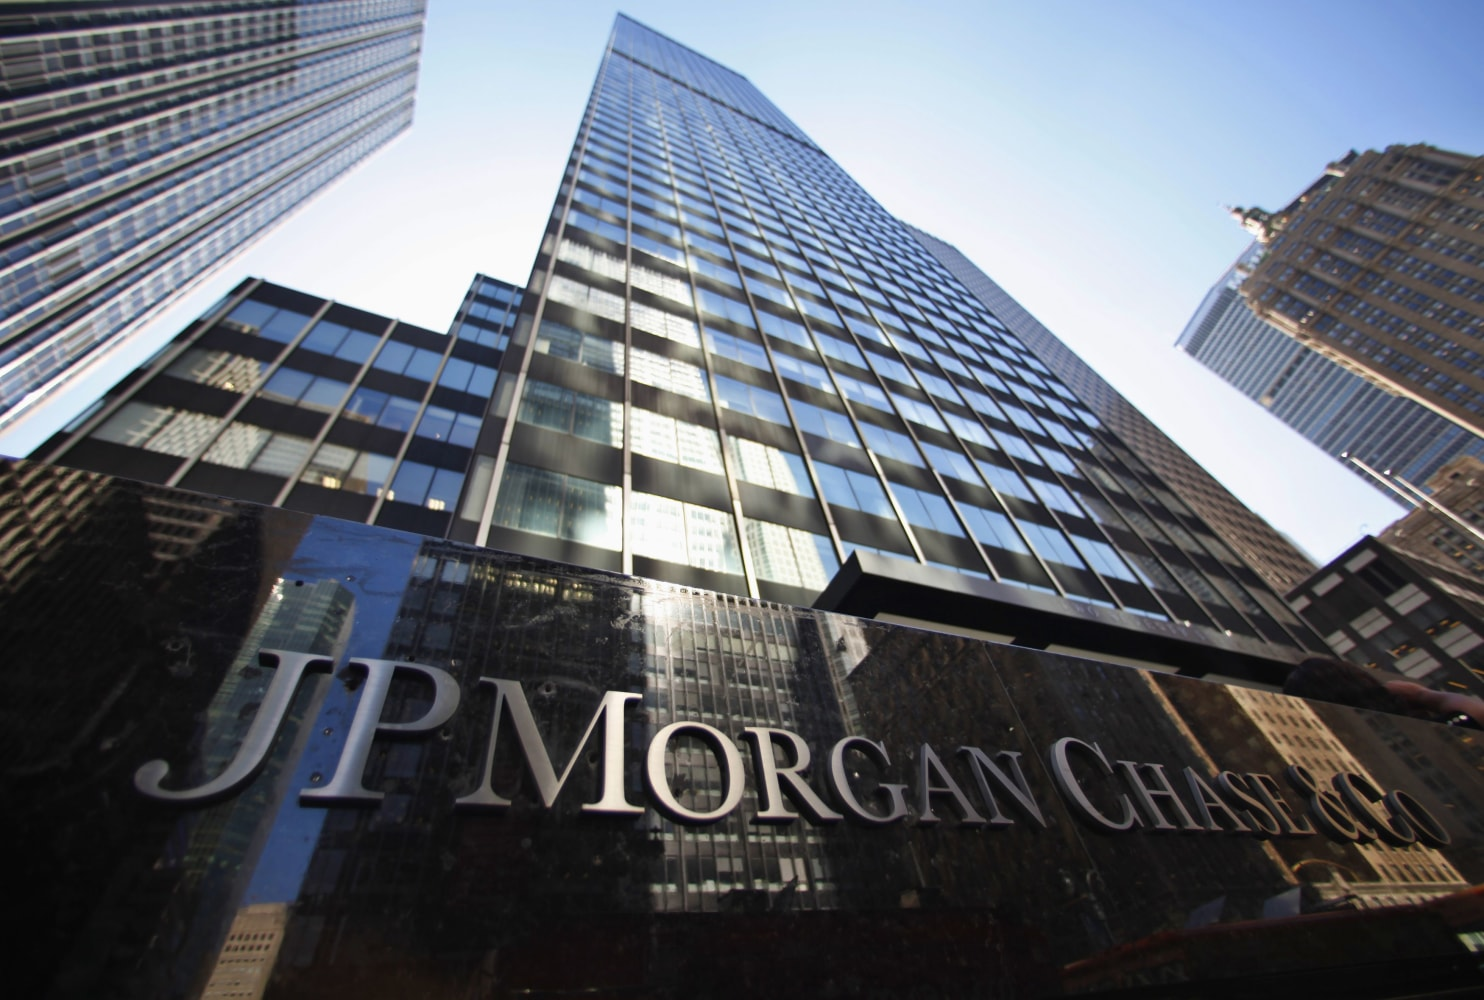 JPMorgan Chase U0026 Co Is Warning Some 465,000 Holders Of Prepaid Cash Cards  Issued By The